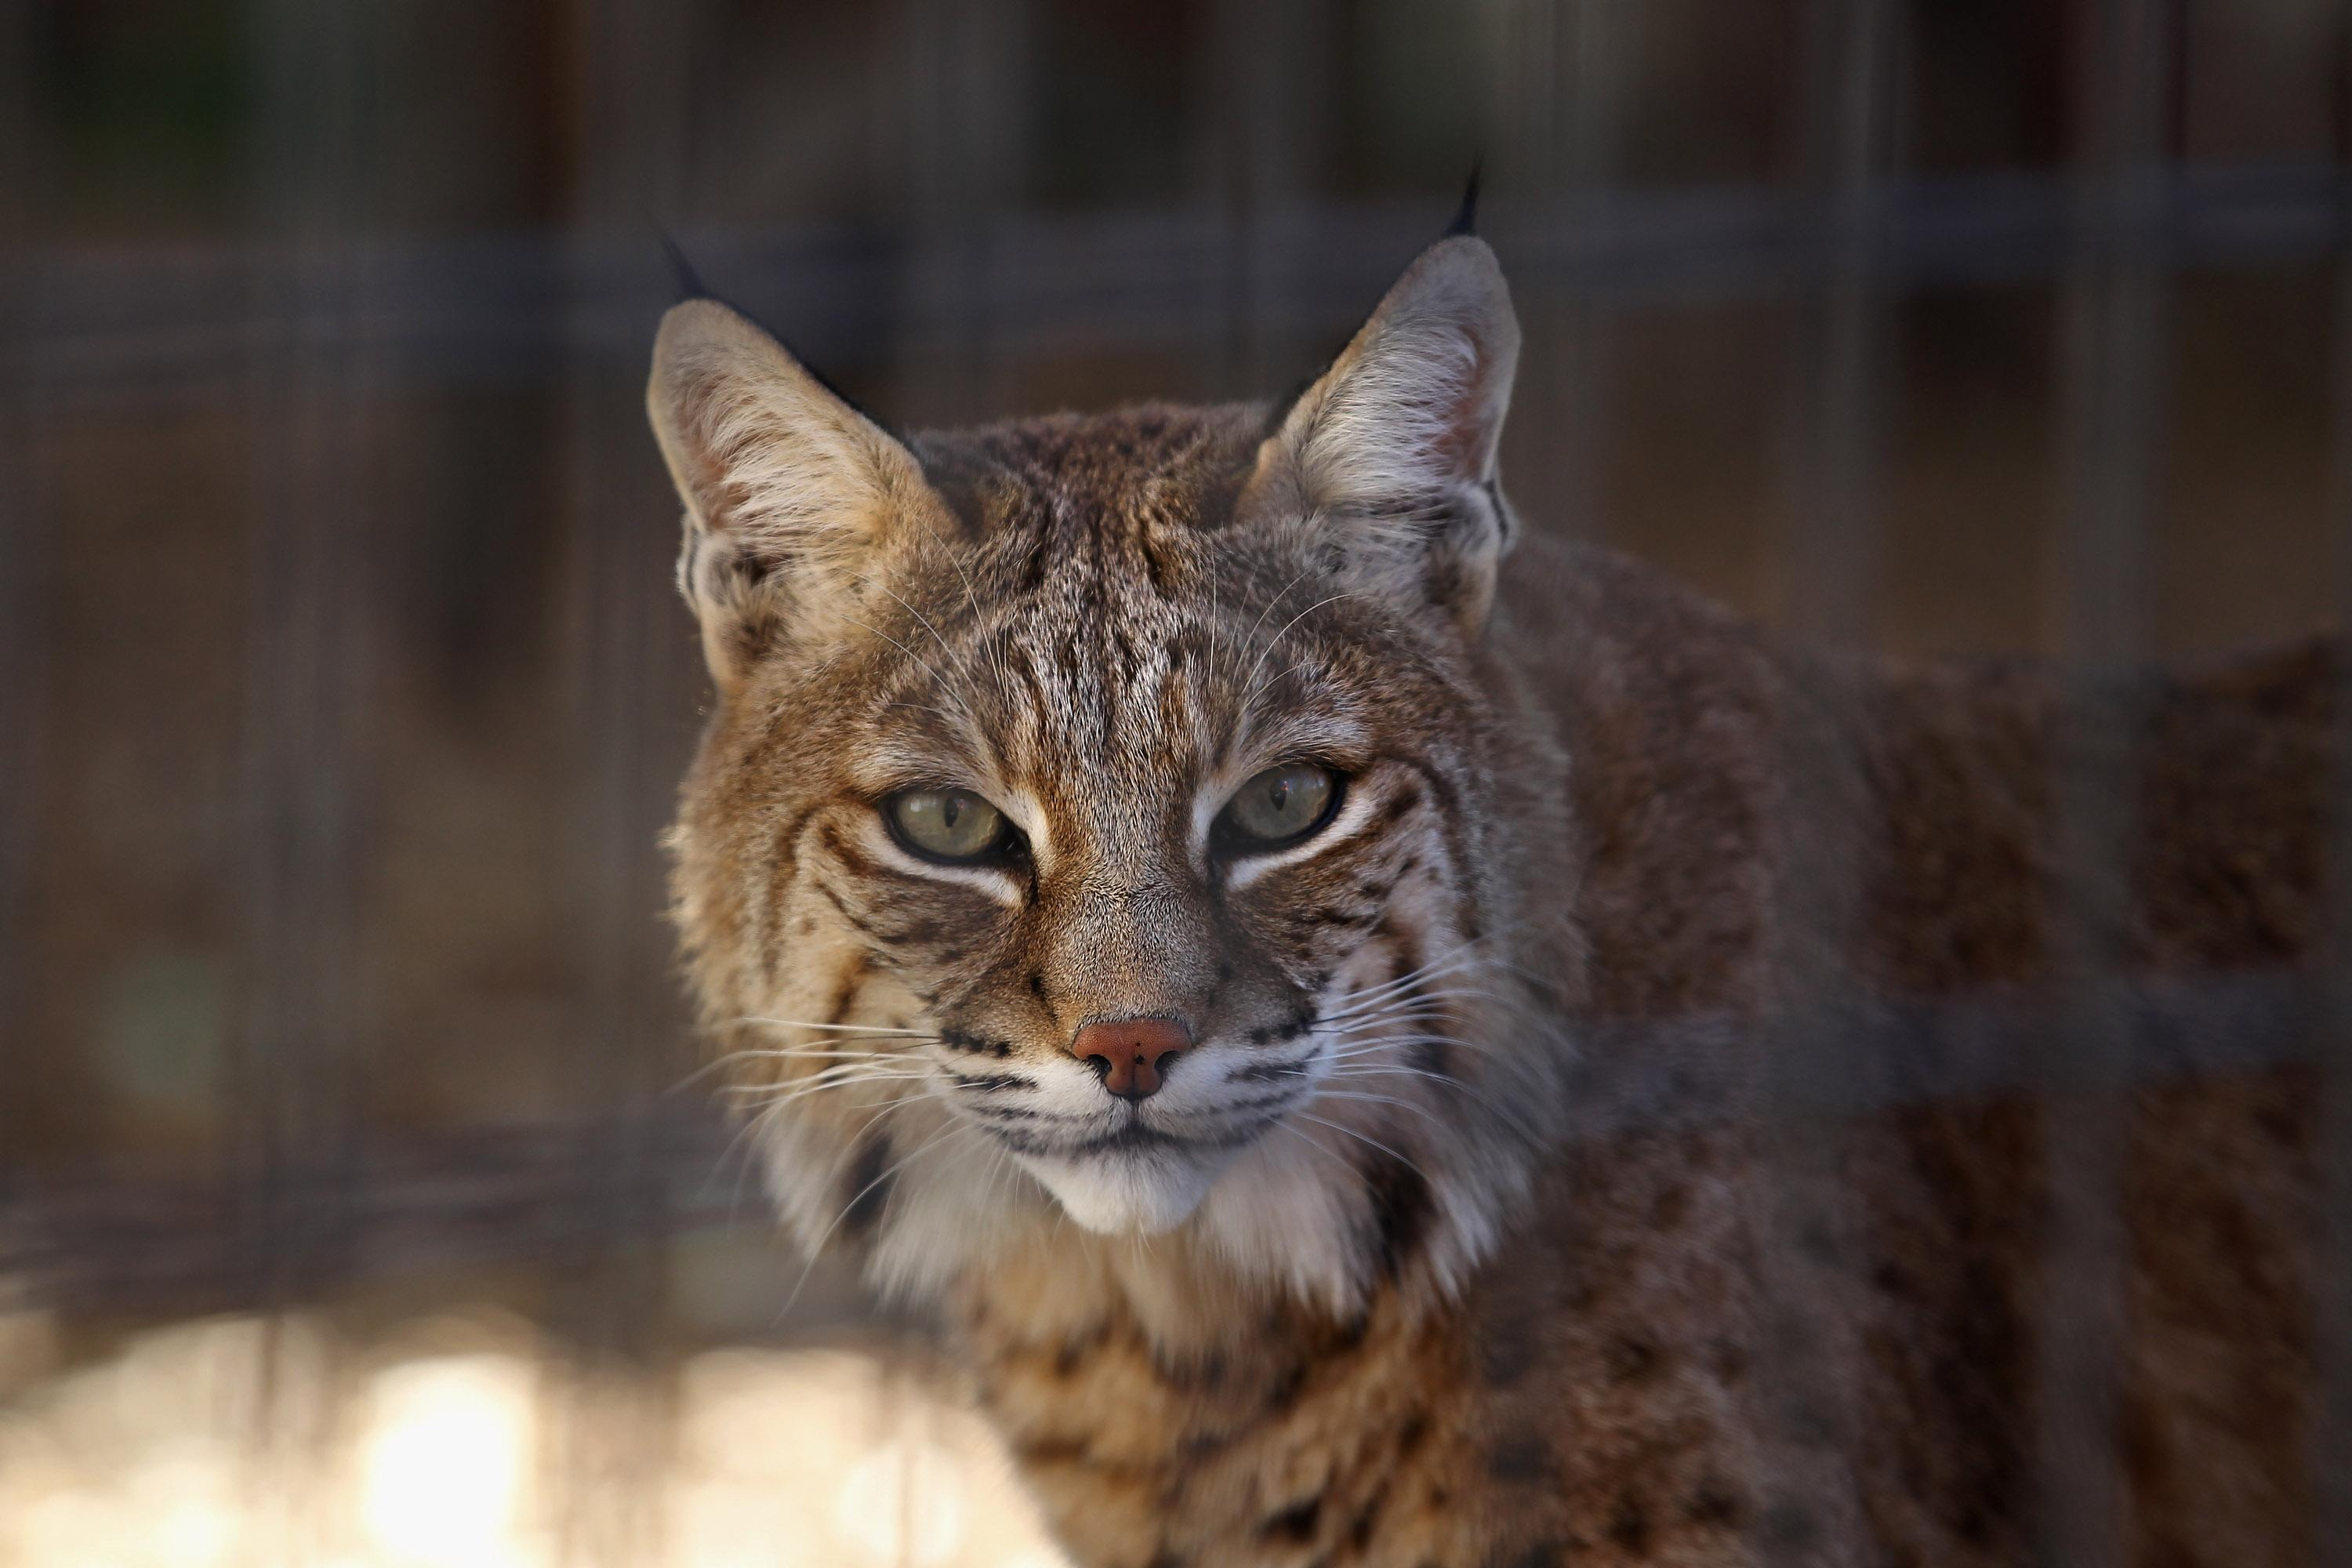 Grandma attacked, kills bobcat with bare hands